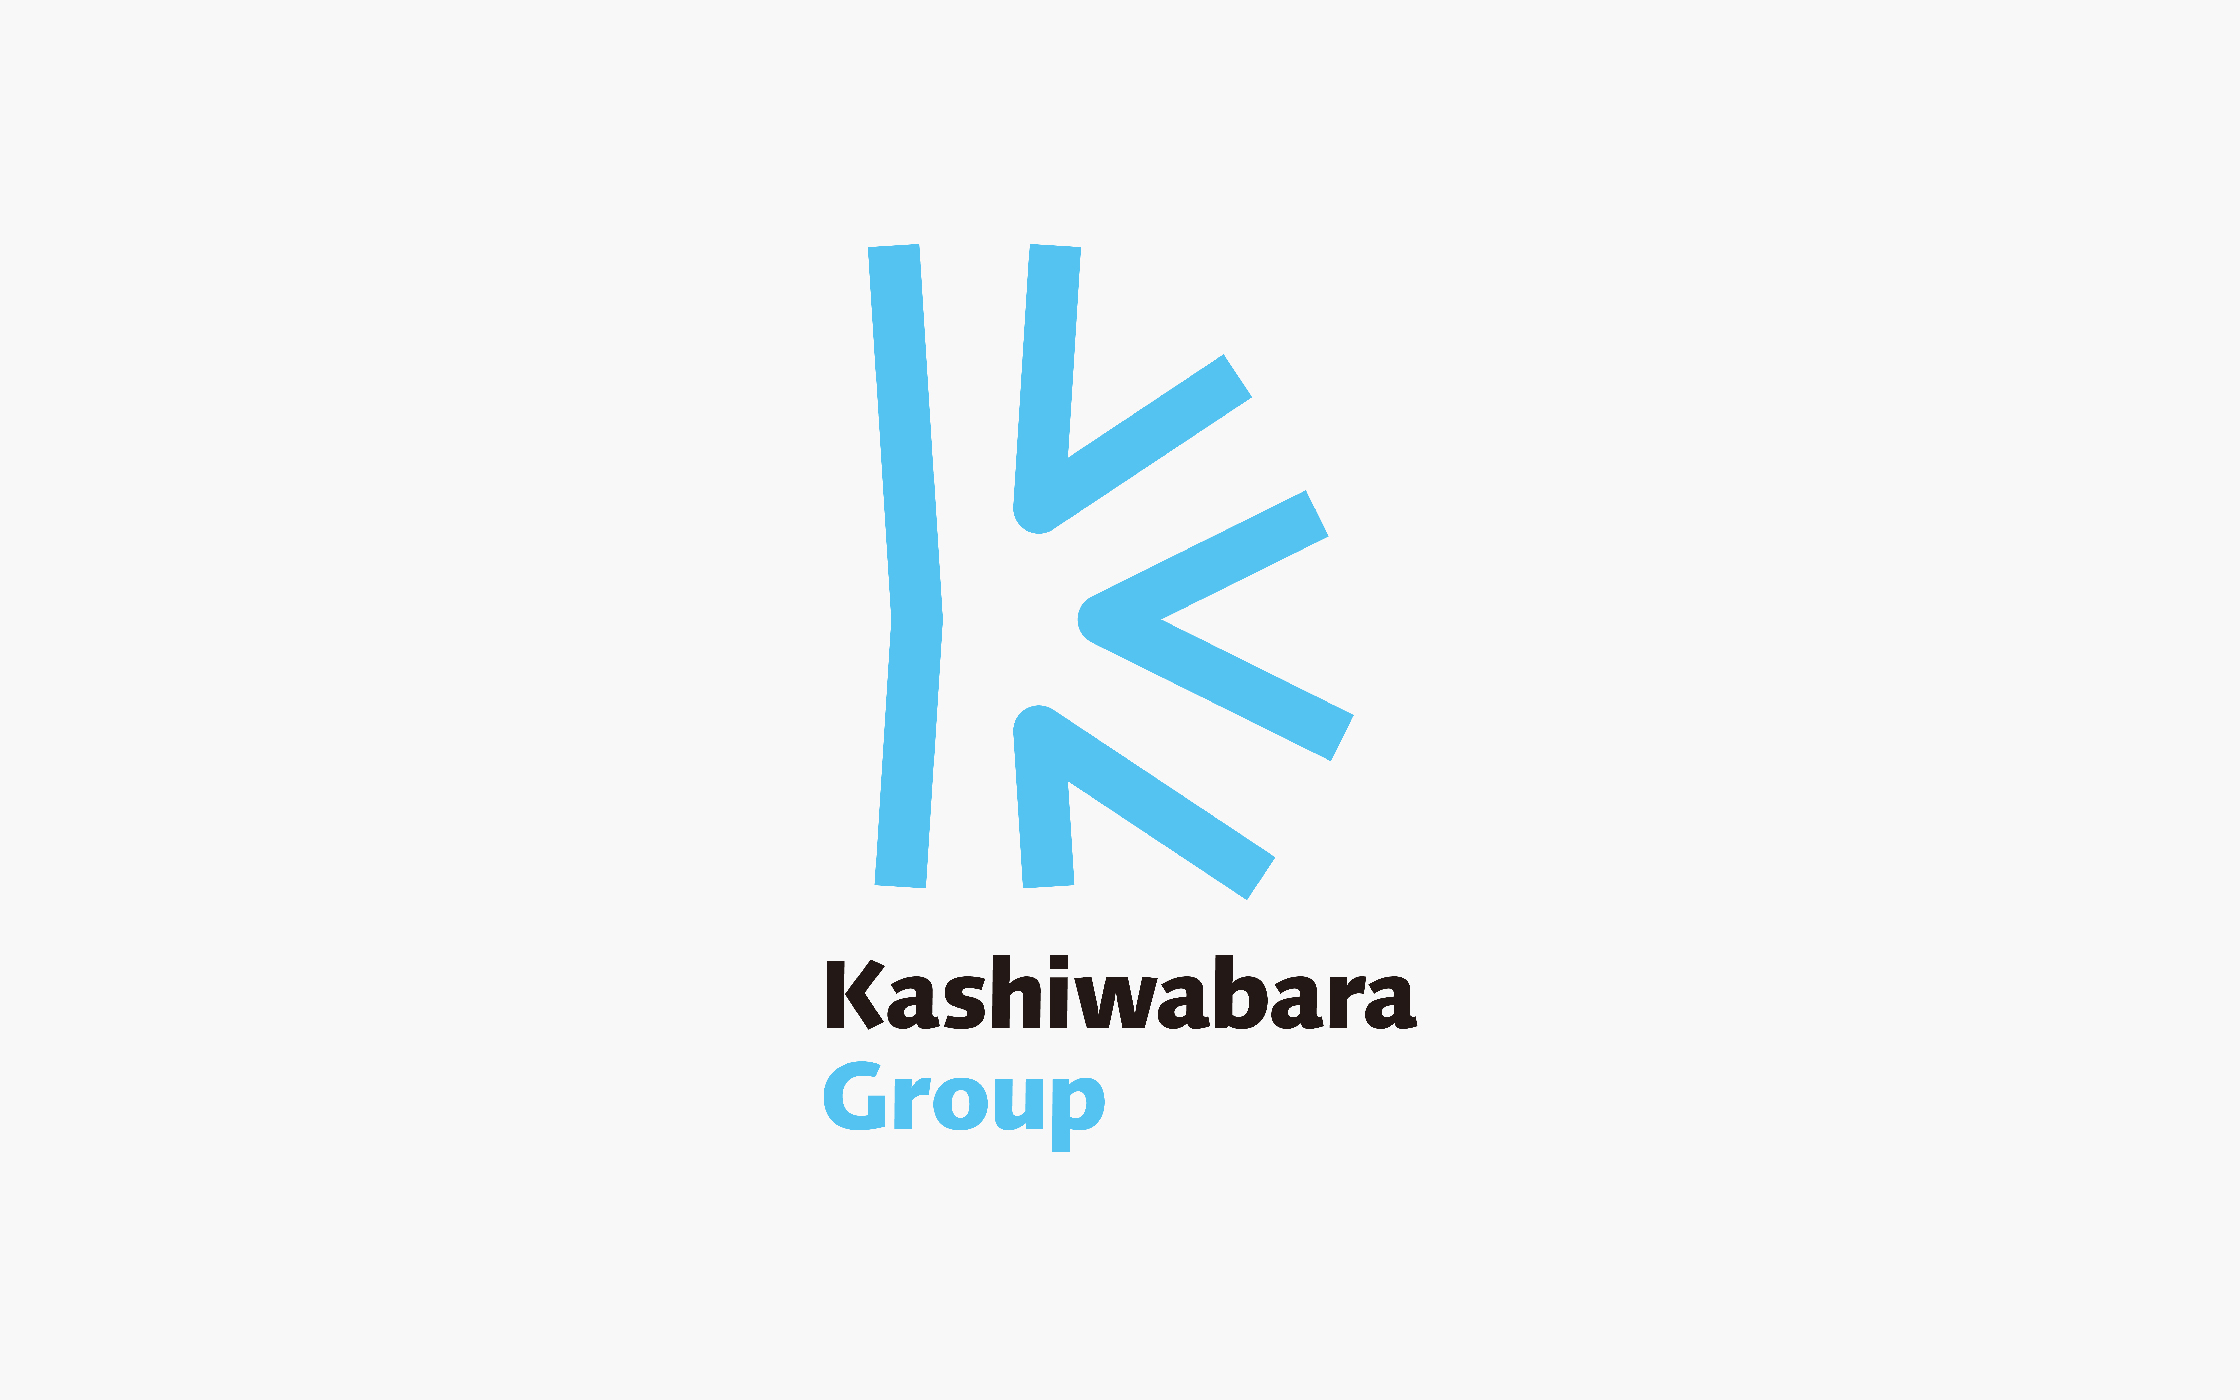 Kashiwabara Group Visual Identity